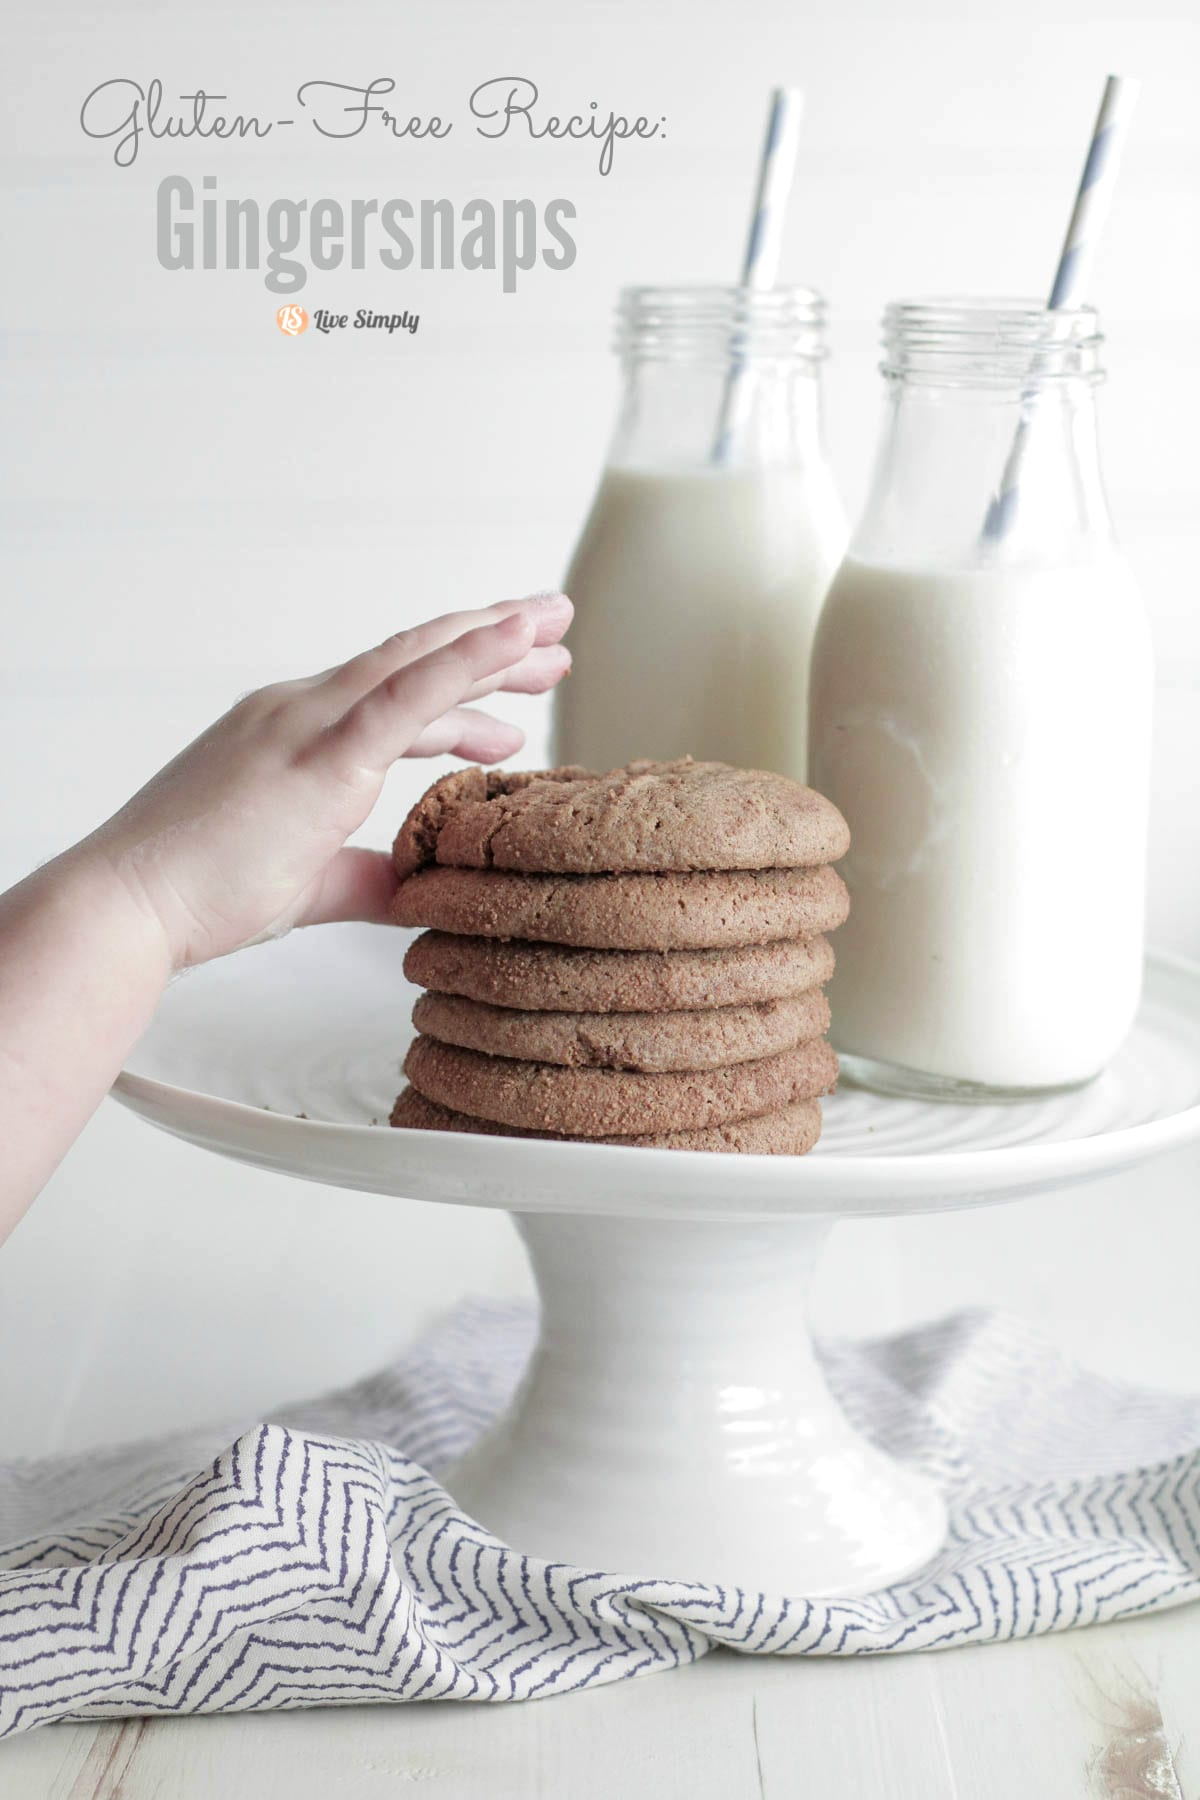 Ultimate fall baking converting recipes for gluten free baking how to convert recipes to be gluten free gluten free gingersnaps forumfinder Images